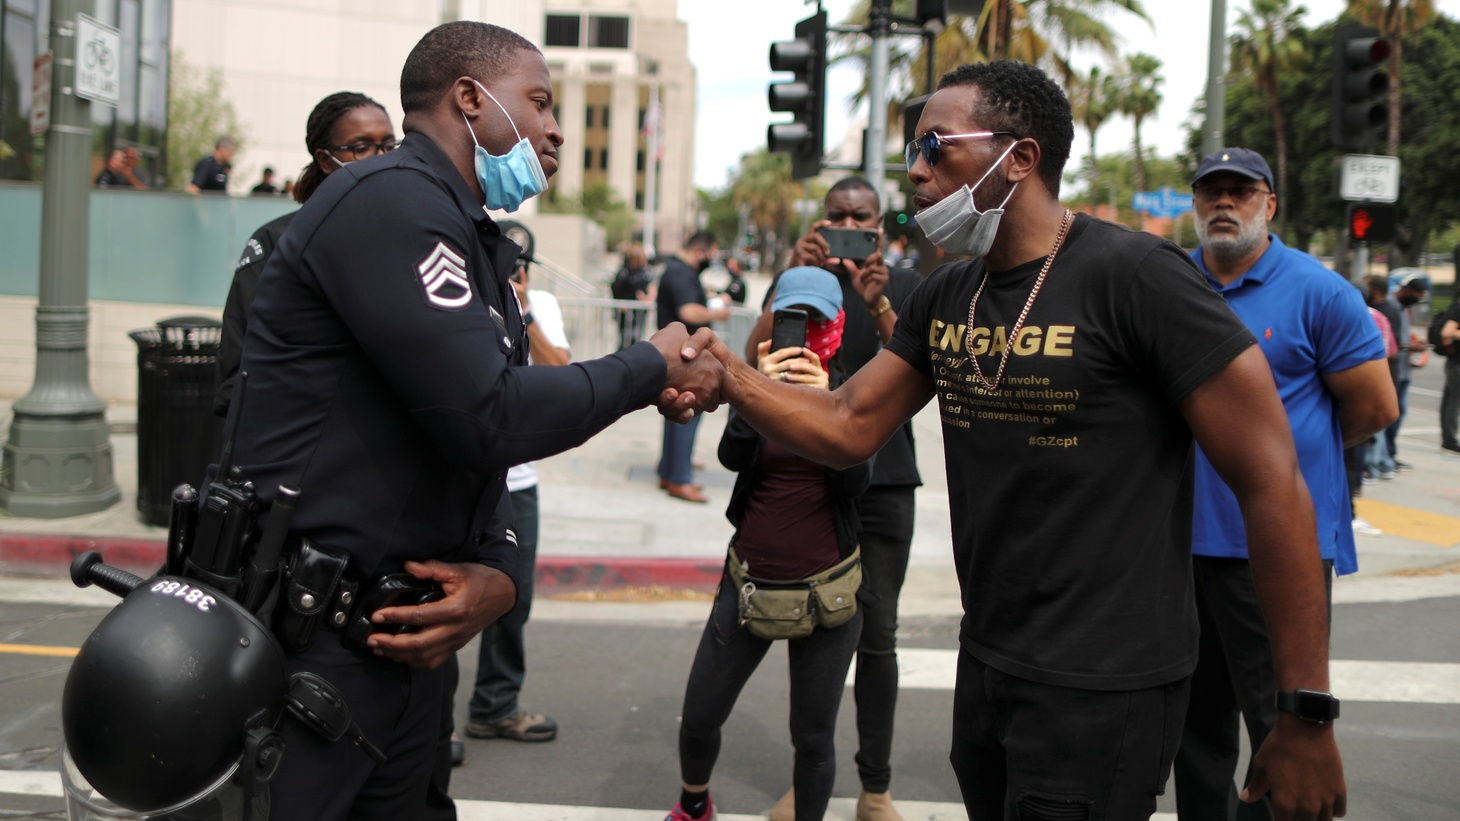 A police officer shakes hands with a demonstrator during a protest against the death of George Floyd, outside LAPD headquarters in Los Angeles, California, U.S. June 2, 2020.